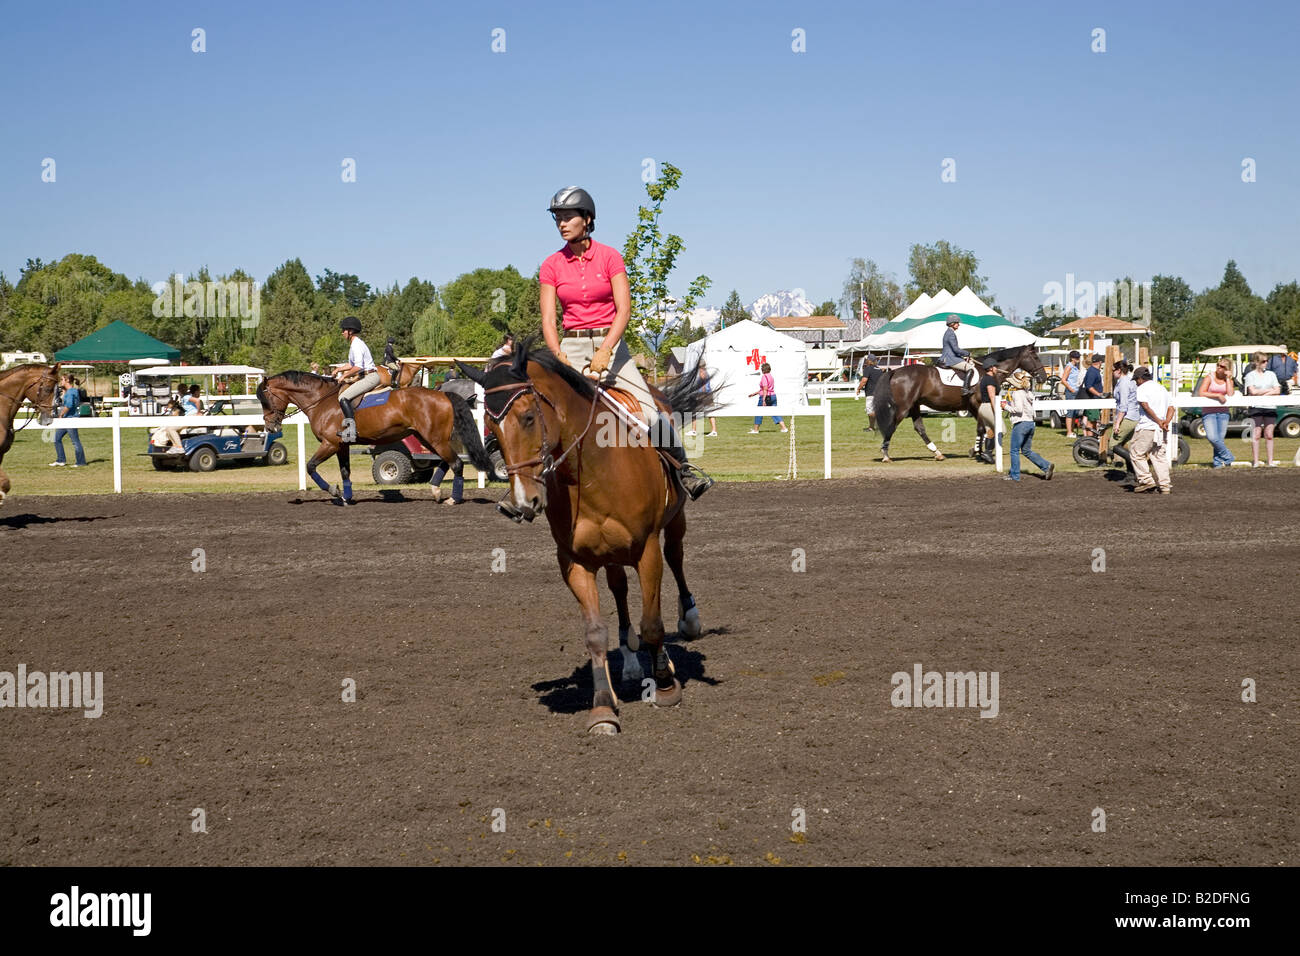 A rider in the practice ring at the High Desert Classic equestrian horse and riding show during July - Stock Image